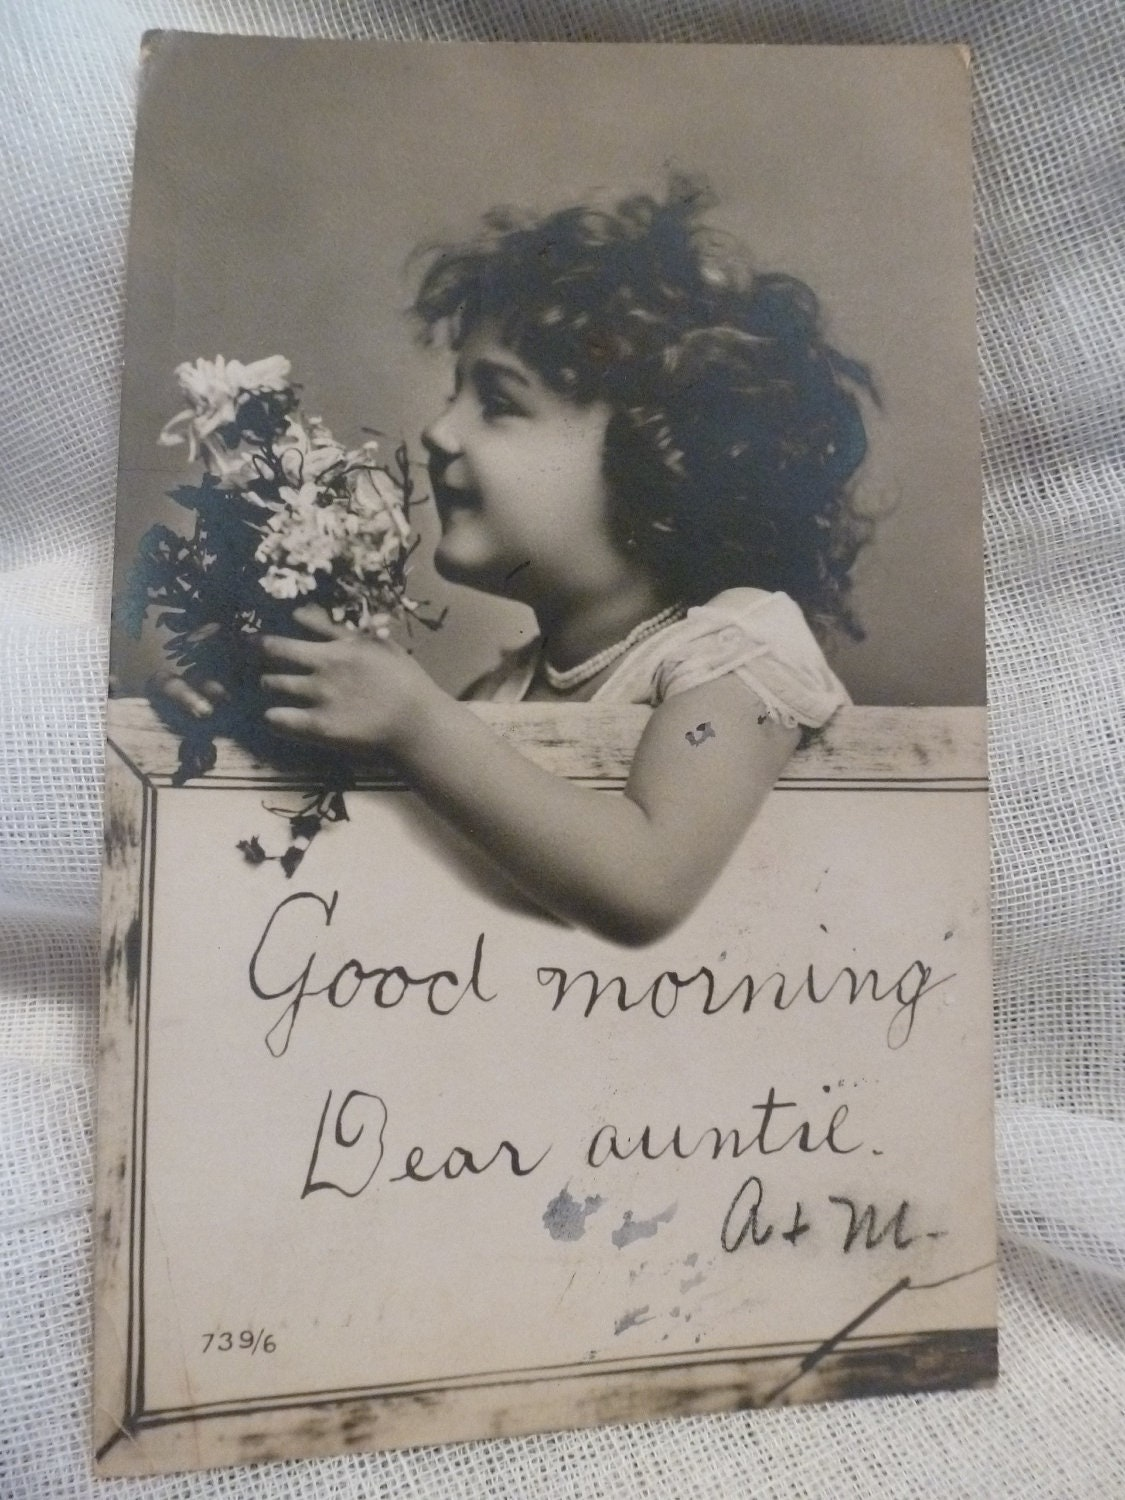 Good Morning Vintage Photos : Good morning dear auntie vintage real photo post by papercreek